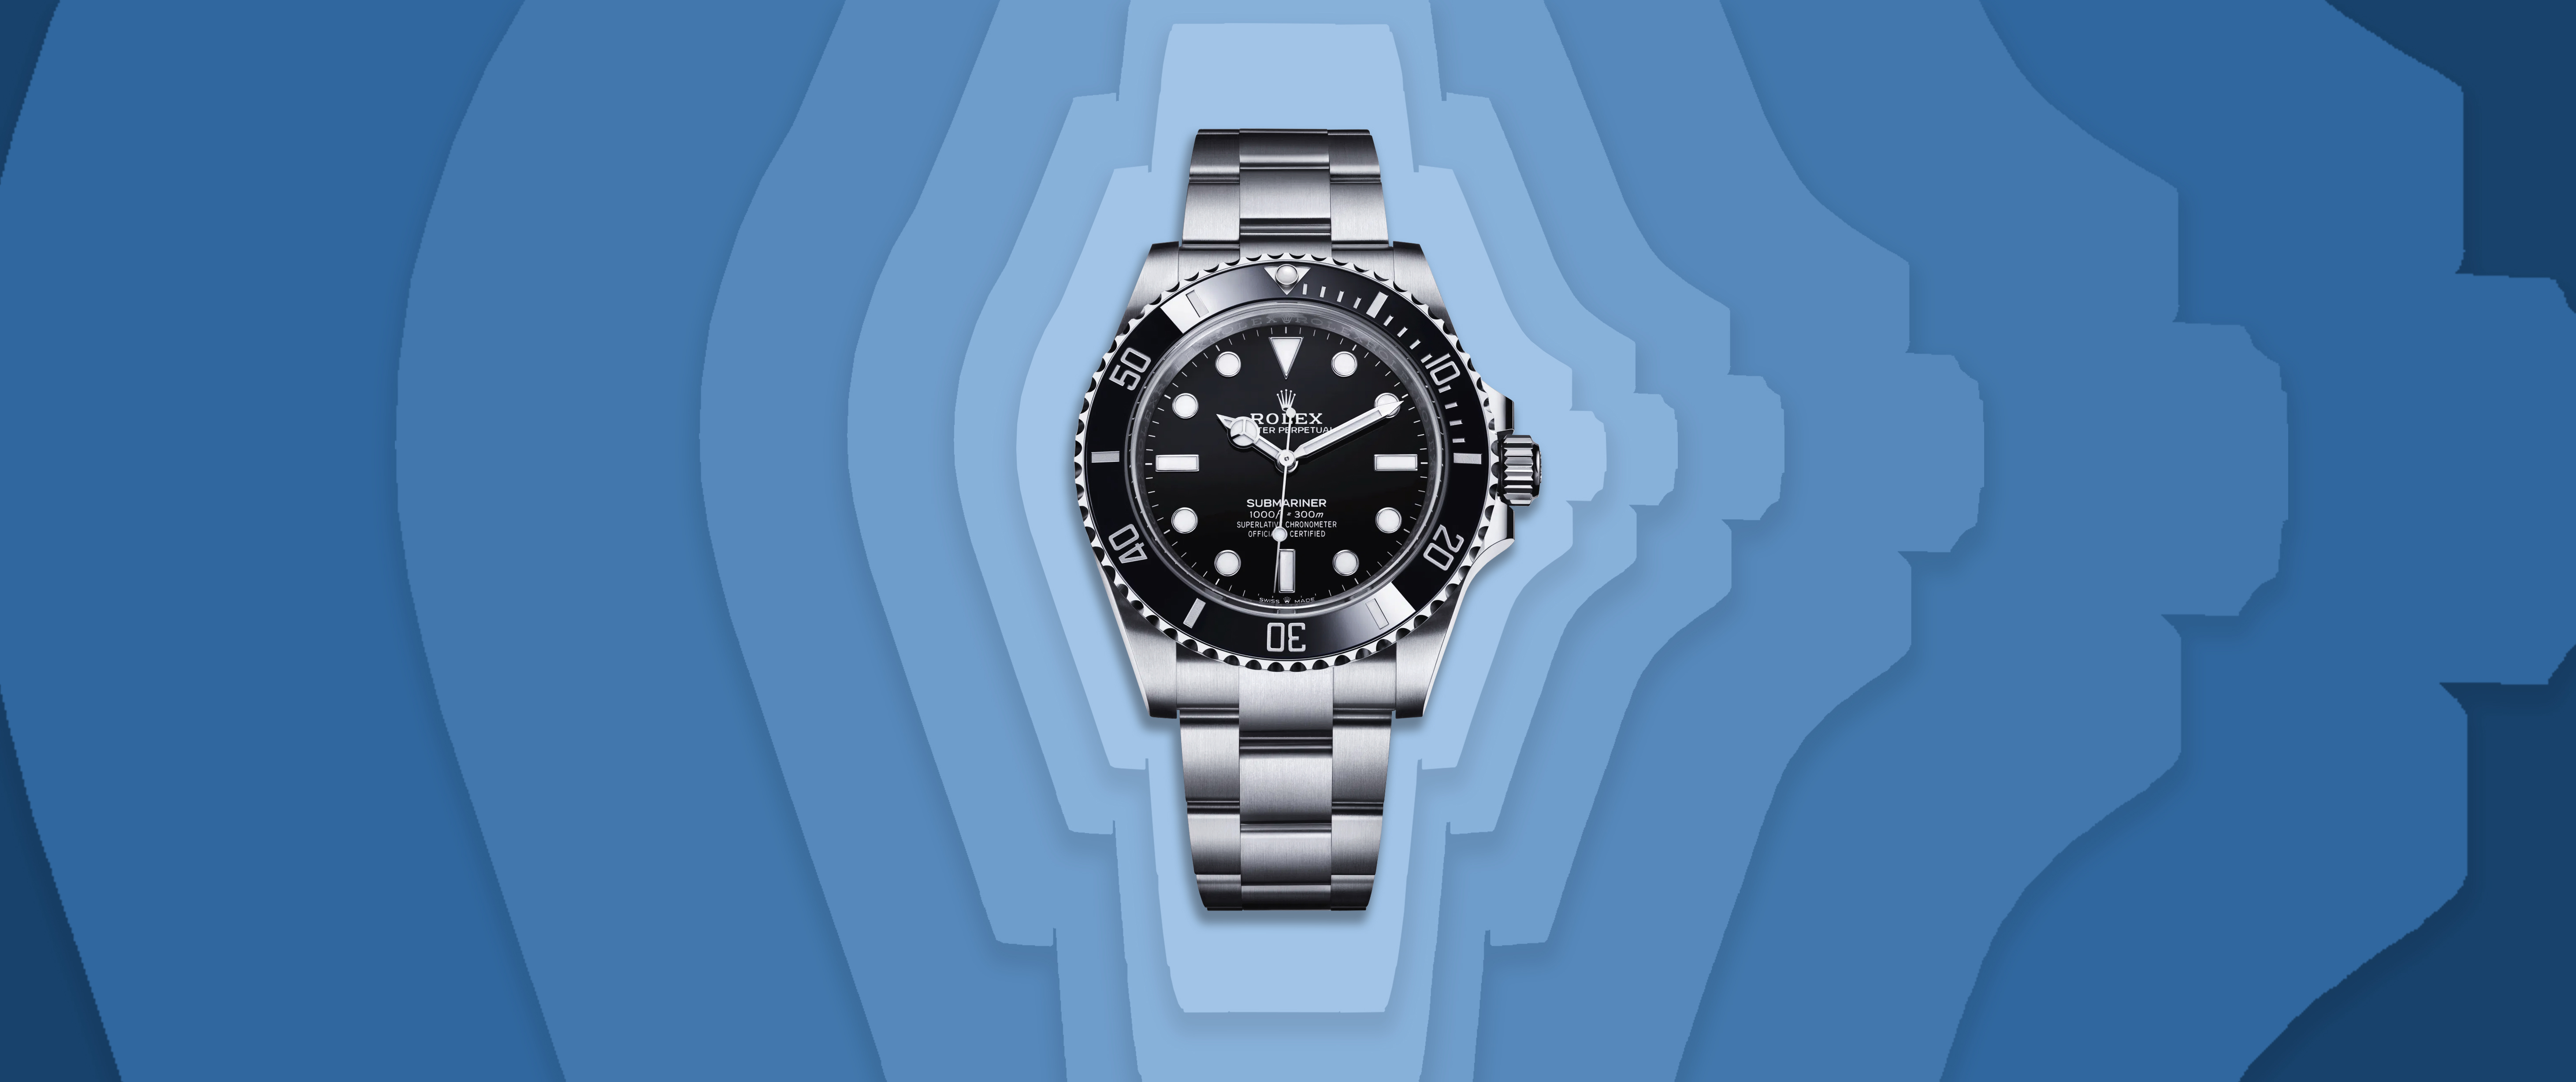 The new Rolex Submariner: Should you be buying one?